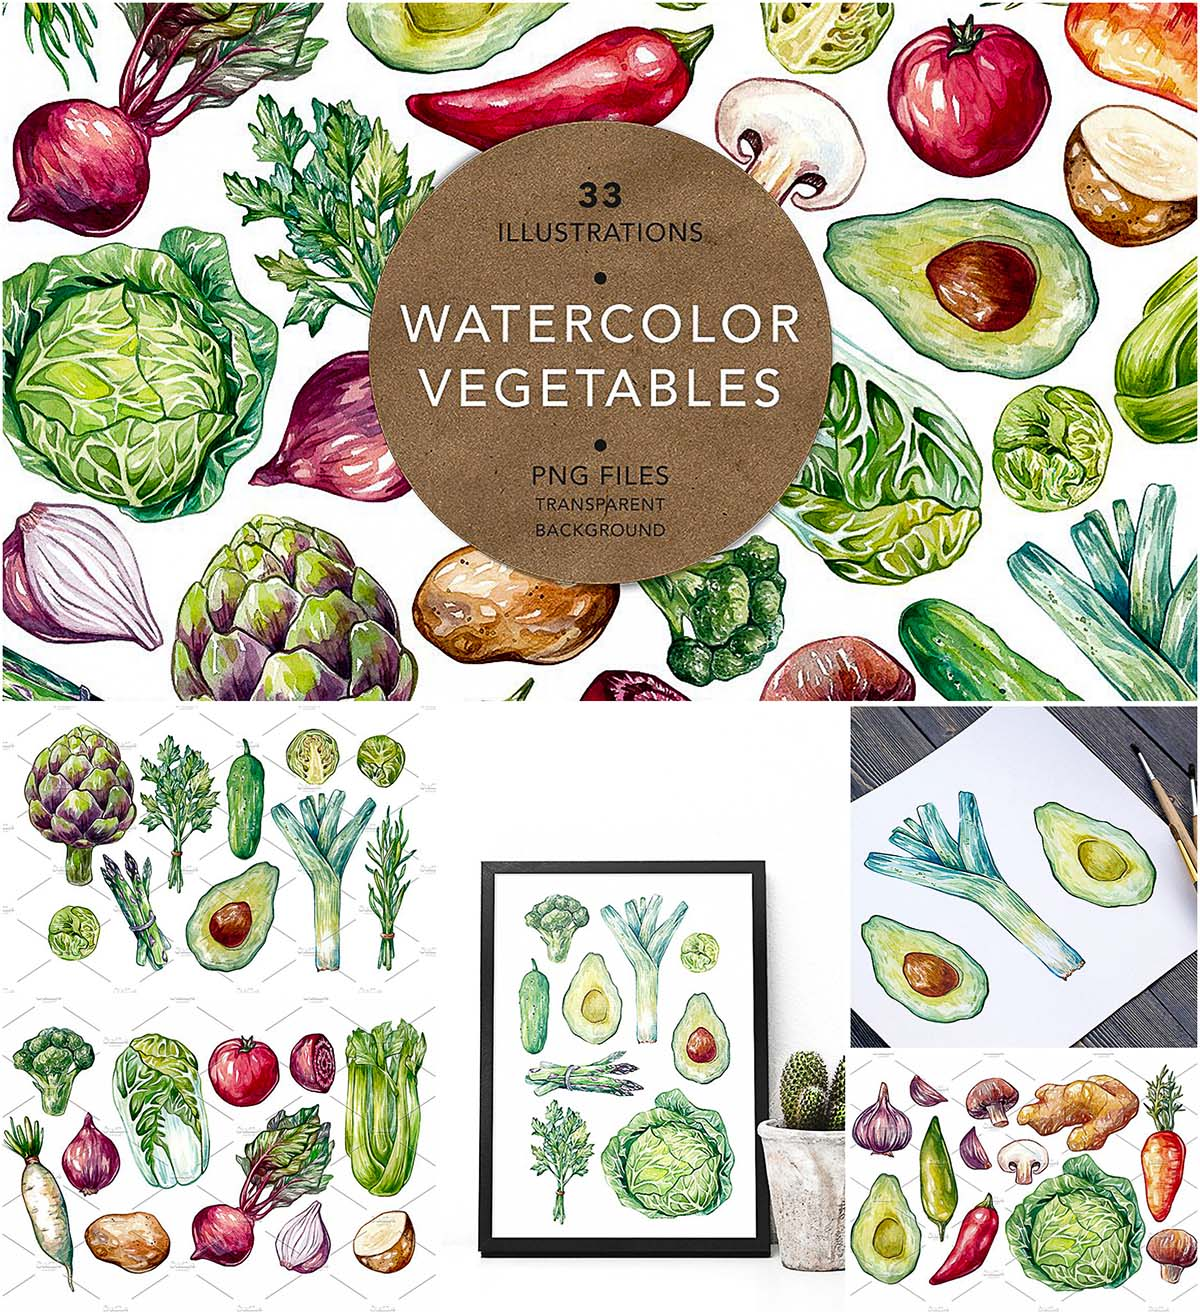 Watercolor vegetables illustrations